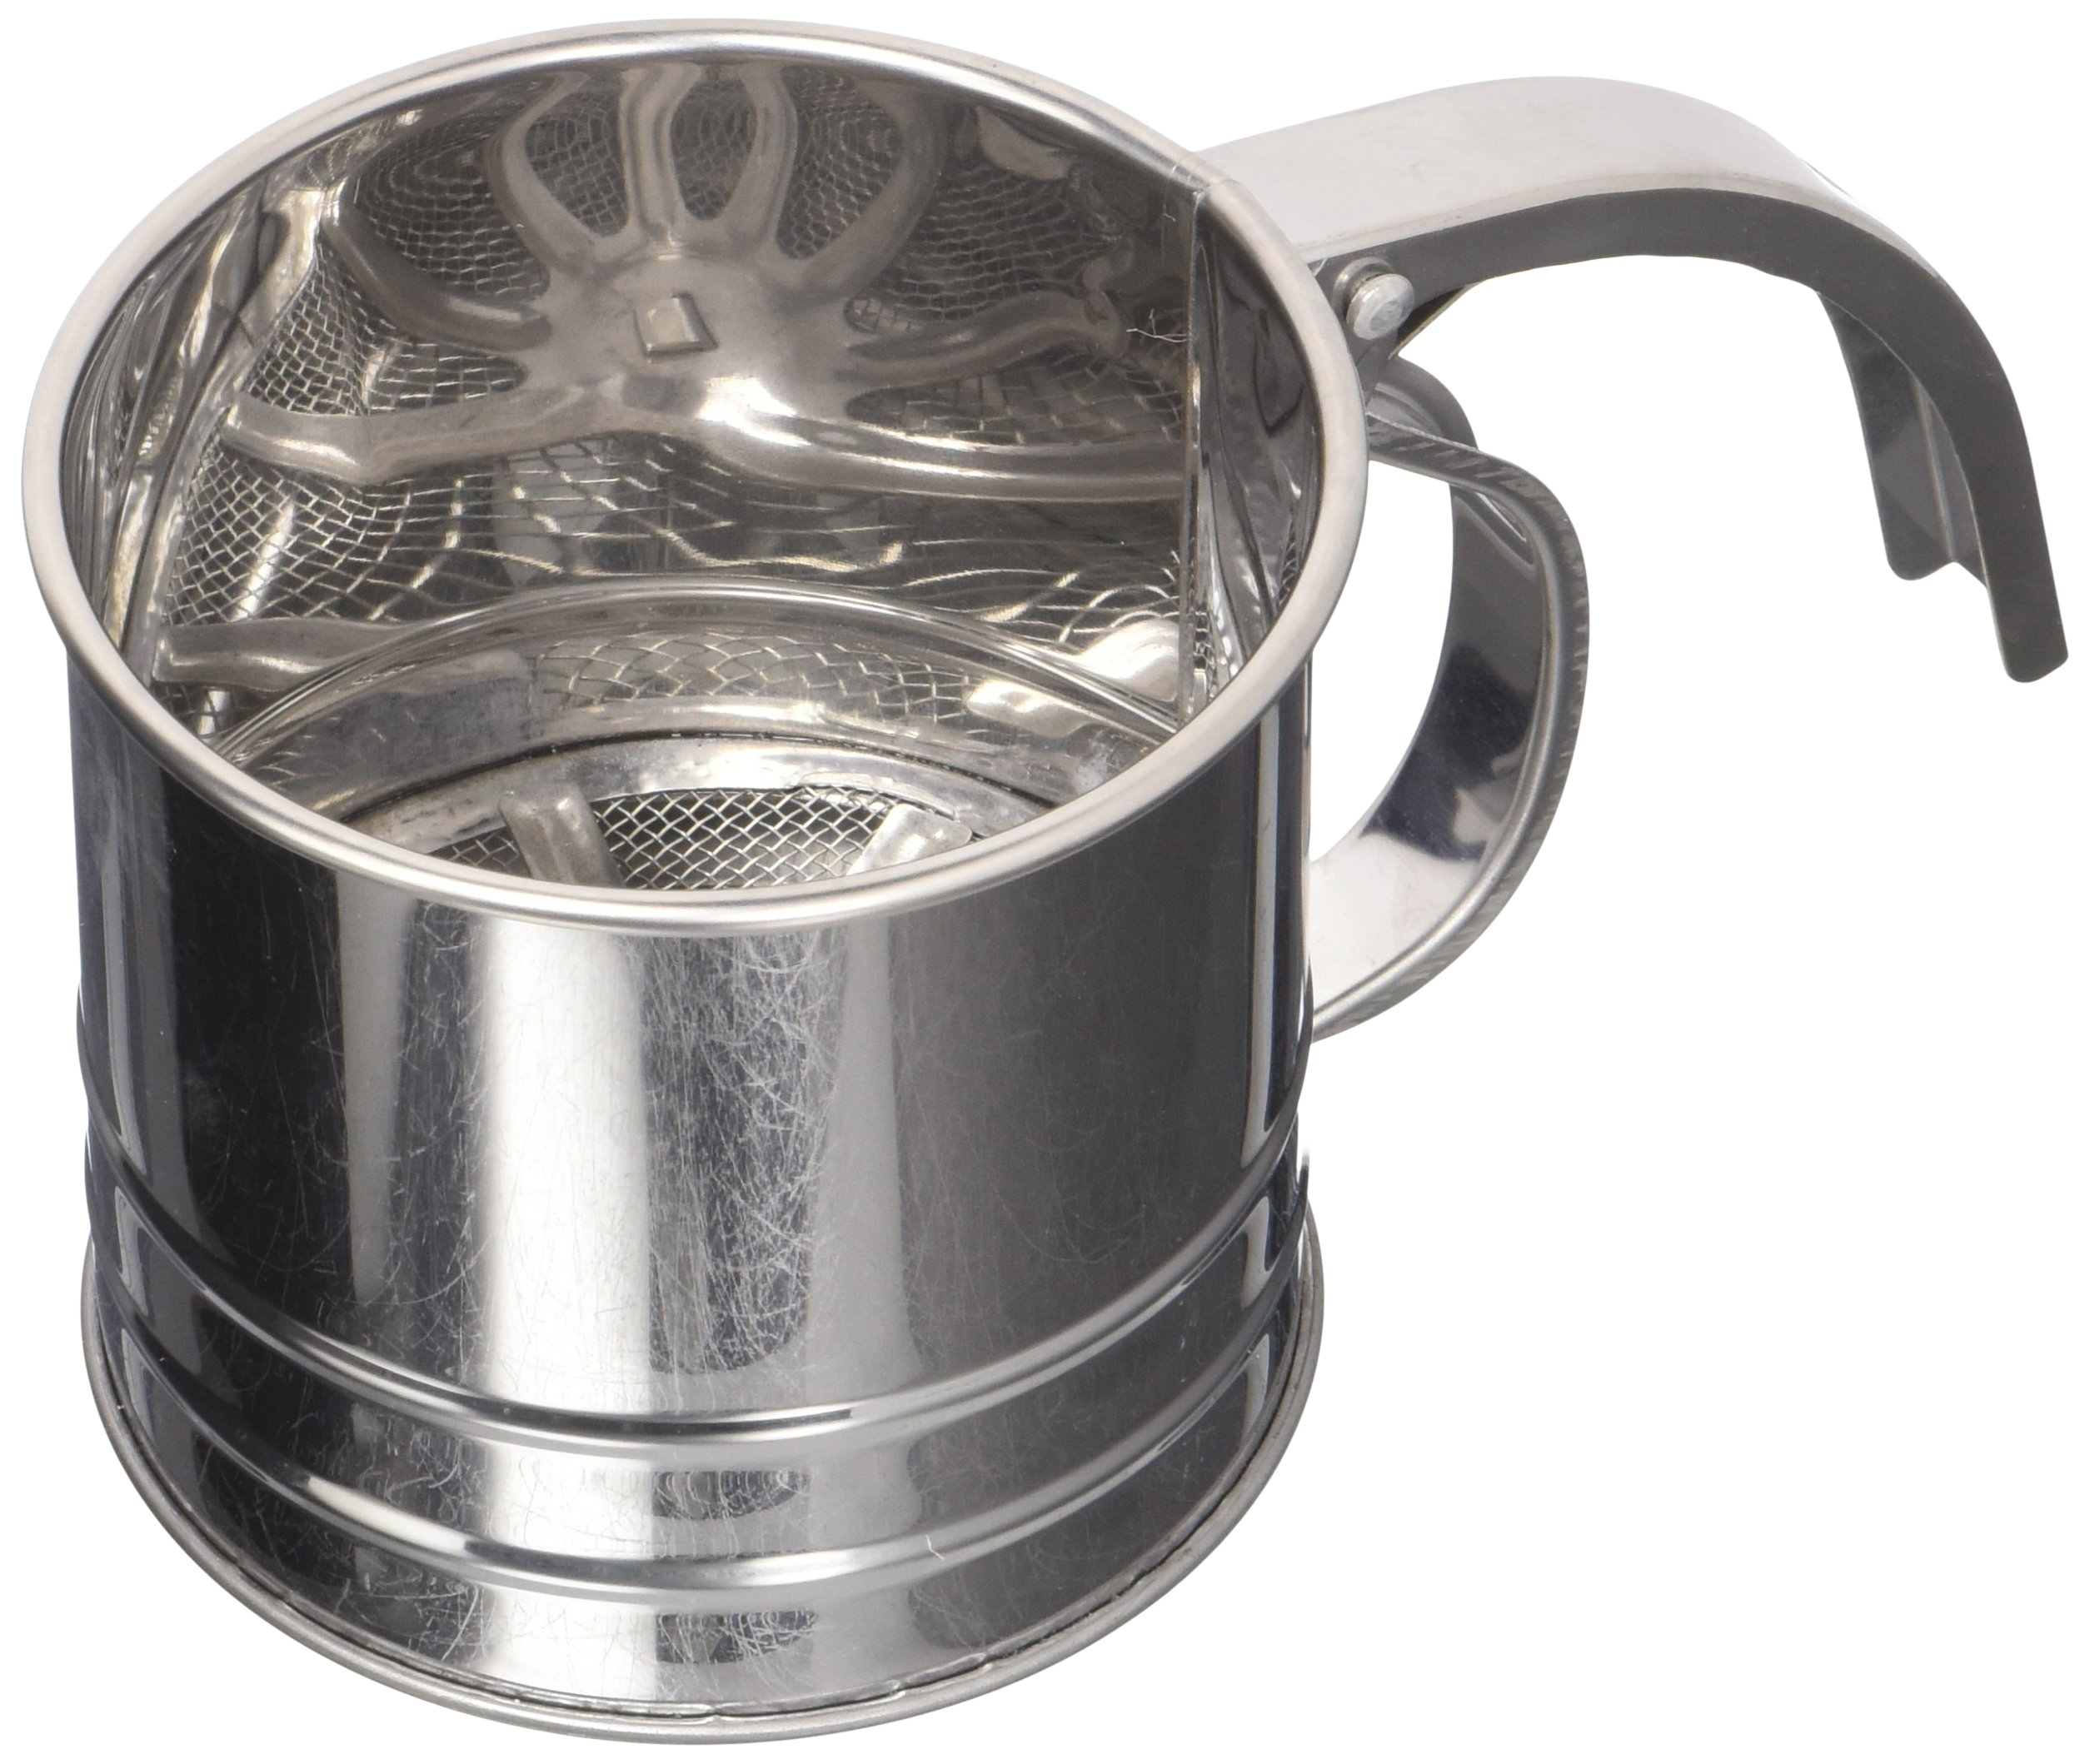 Hamilton Beach Stainless Steel 1 Cup Flour Sifter with Squeeze Handle-02597